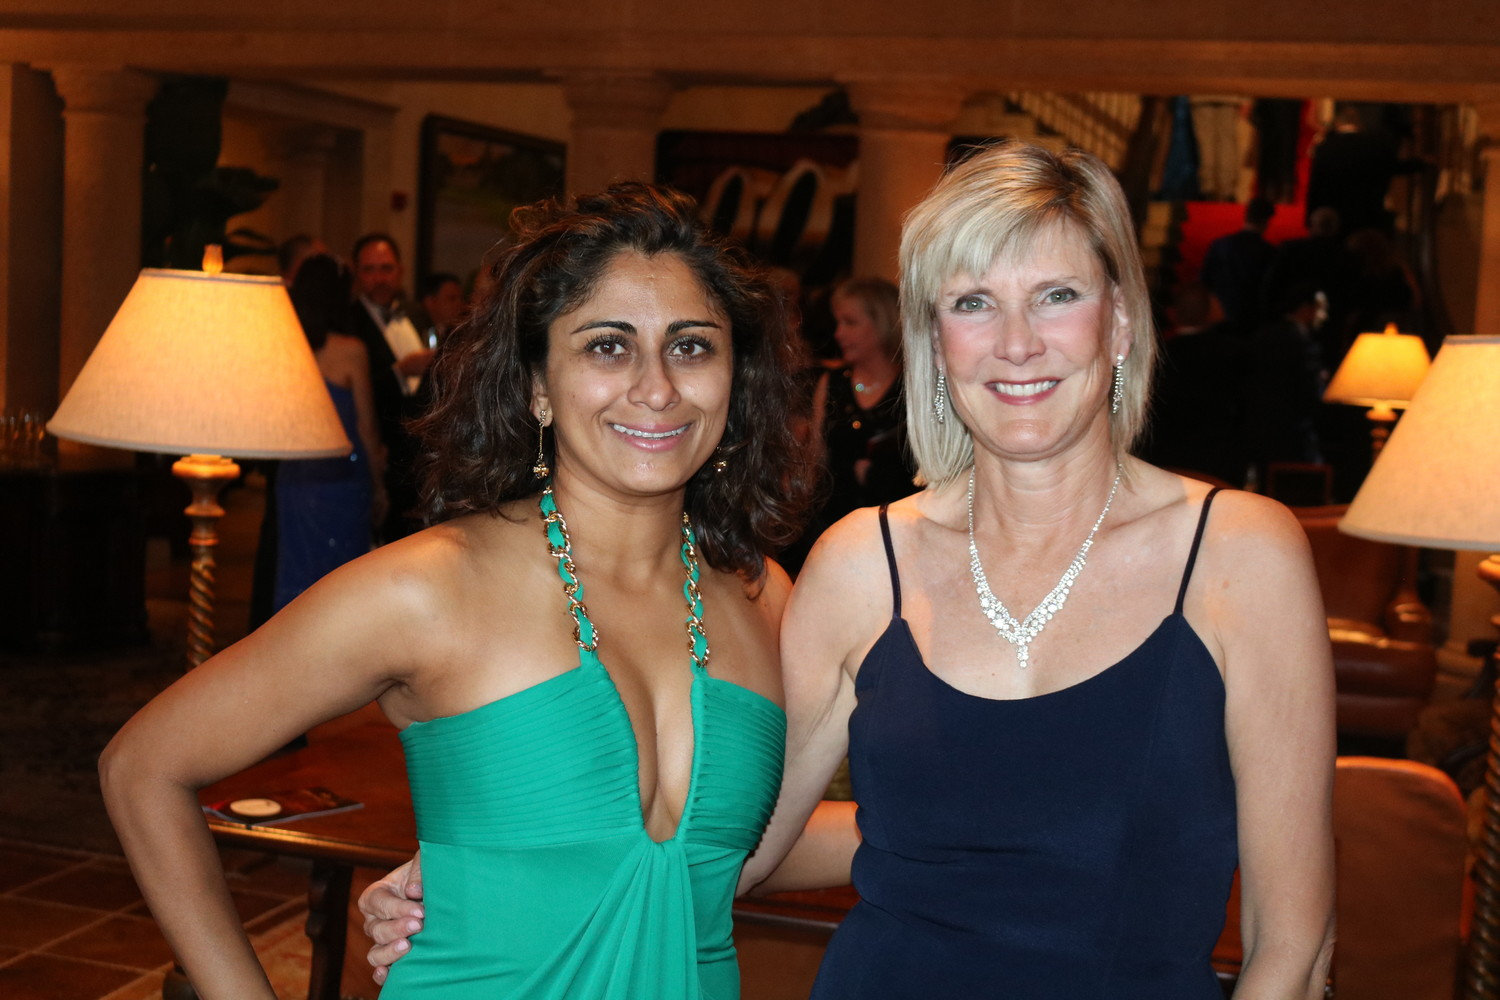 Shreena Patel and Beverly Flanagan